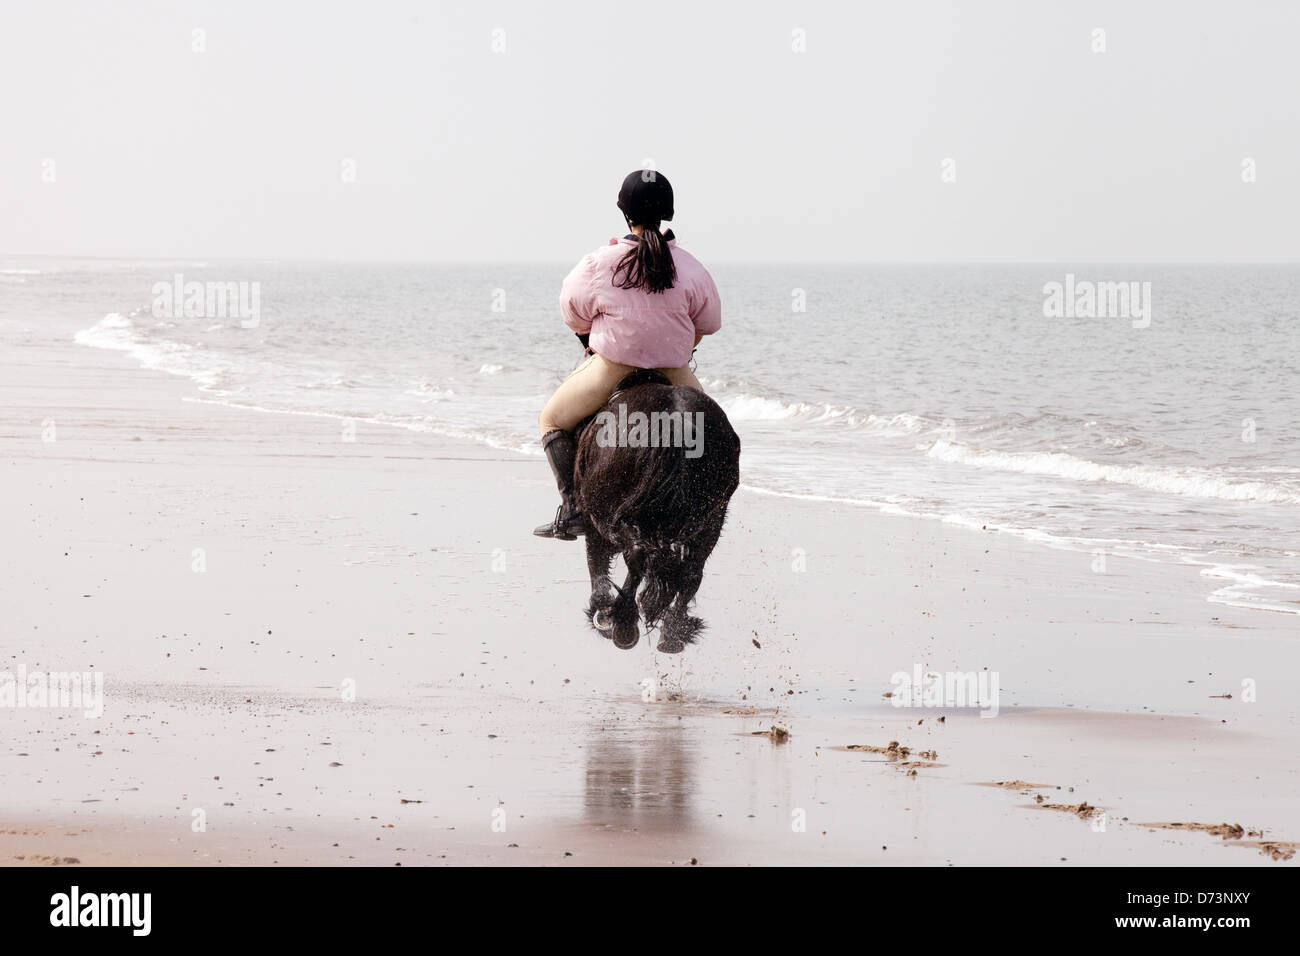 A young woman on her horse galloping away into the distance, Holkham Beach, Norfolk UK - Stock Image